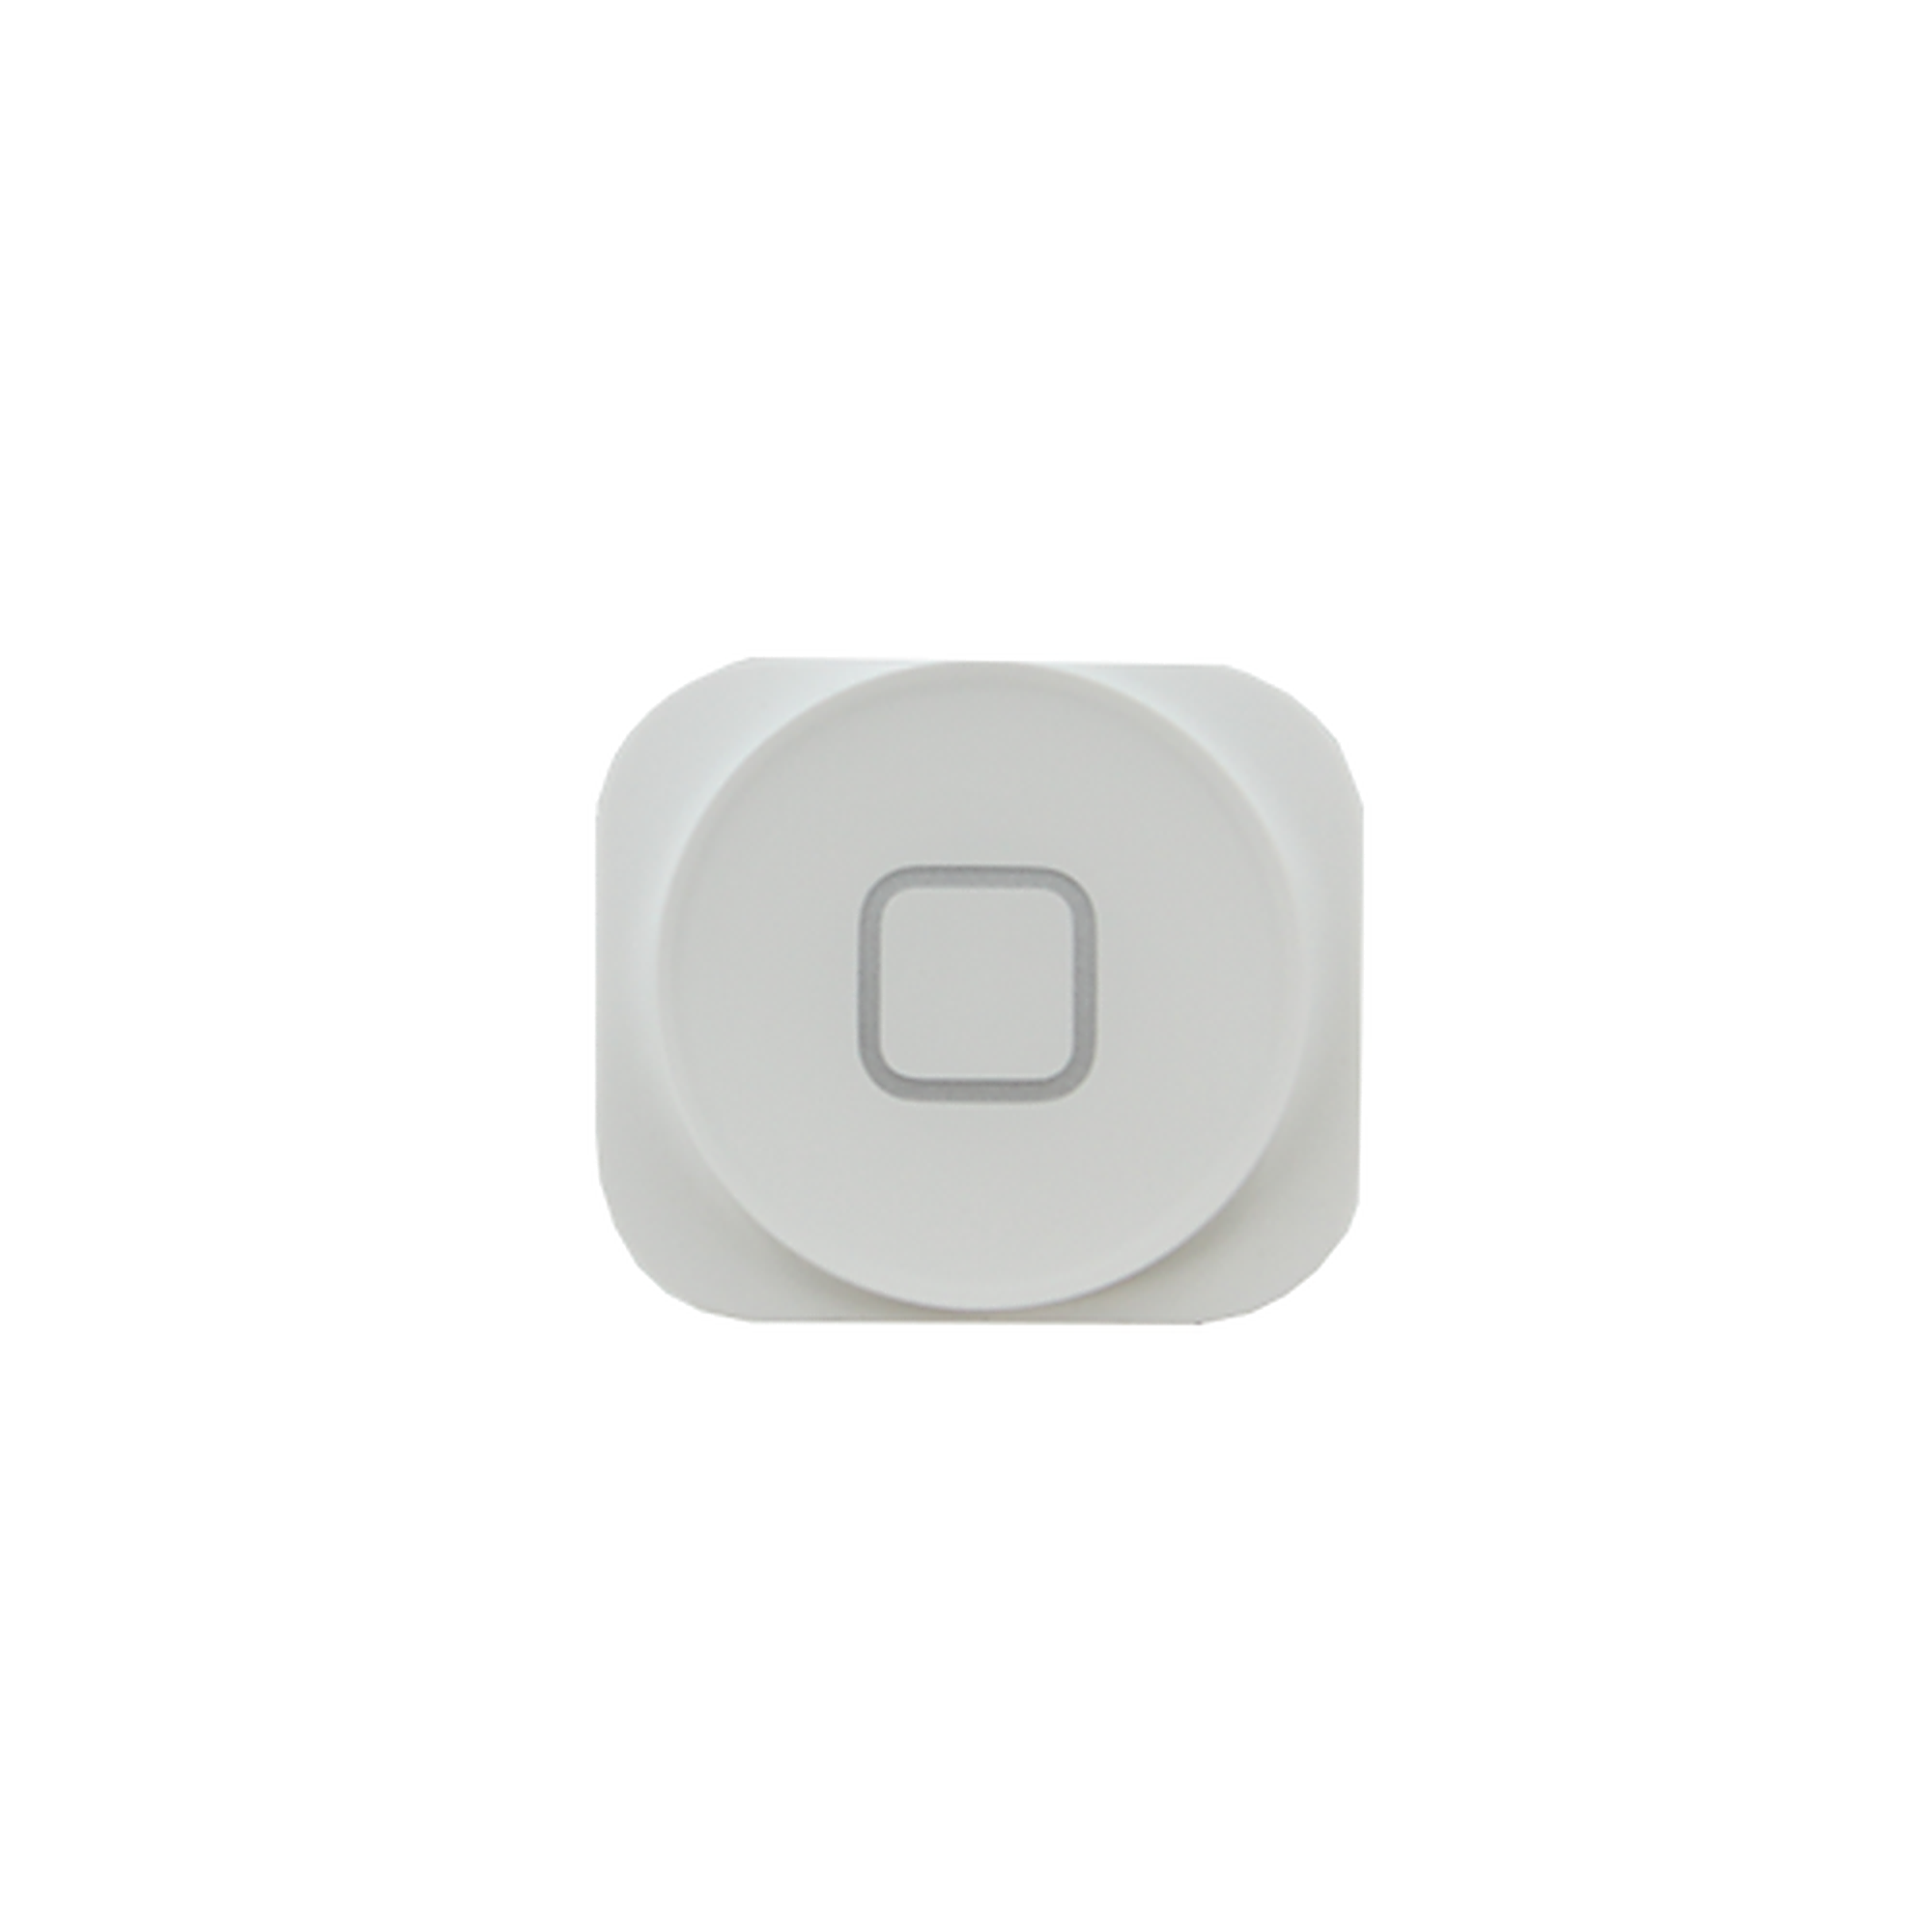 HOME BUTTON IPHONE 5s WHITE